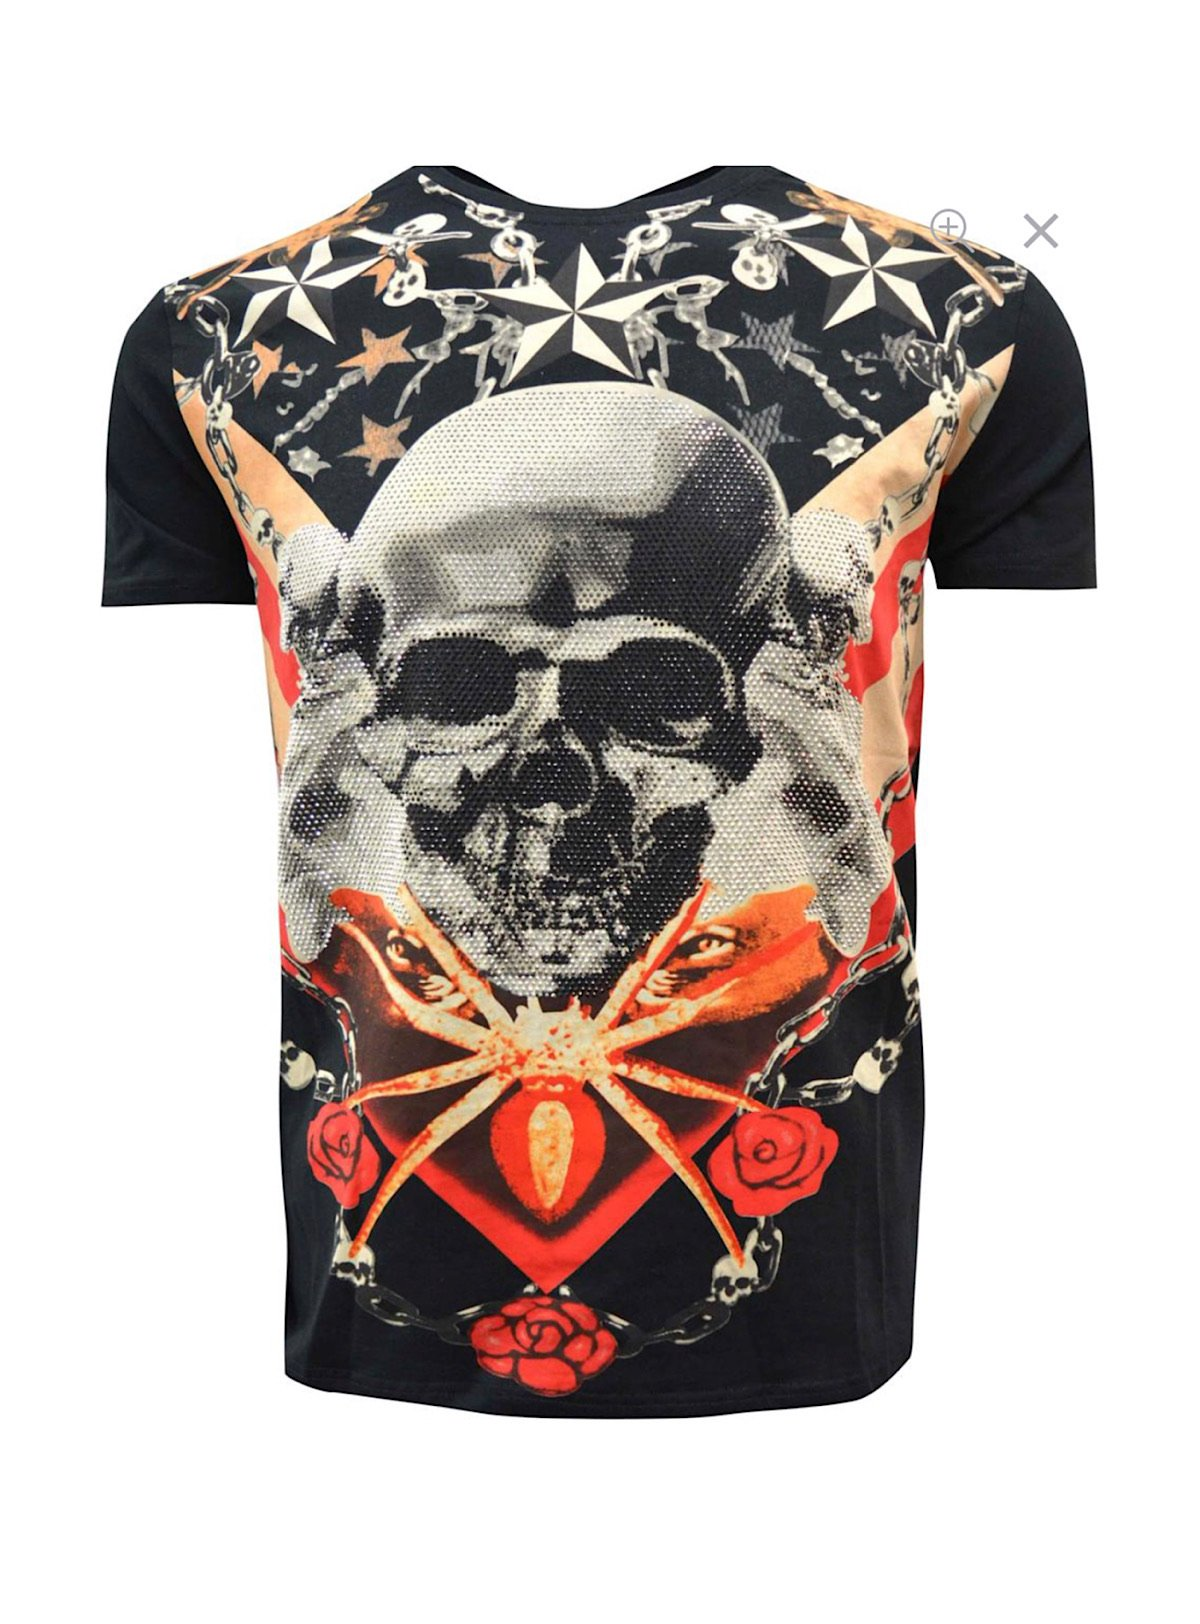 Heads Or Tails T-Shirt - American Skull - Black - 29130